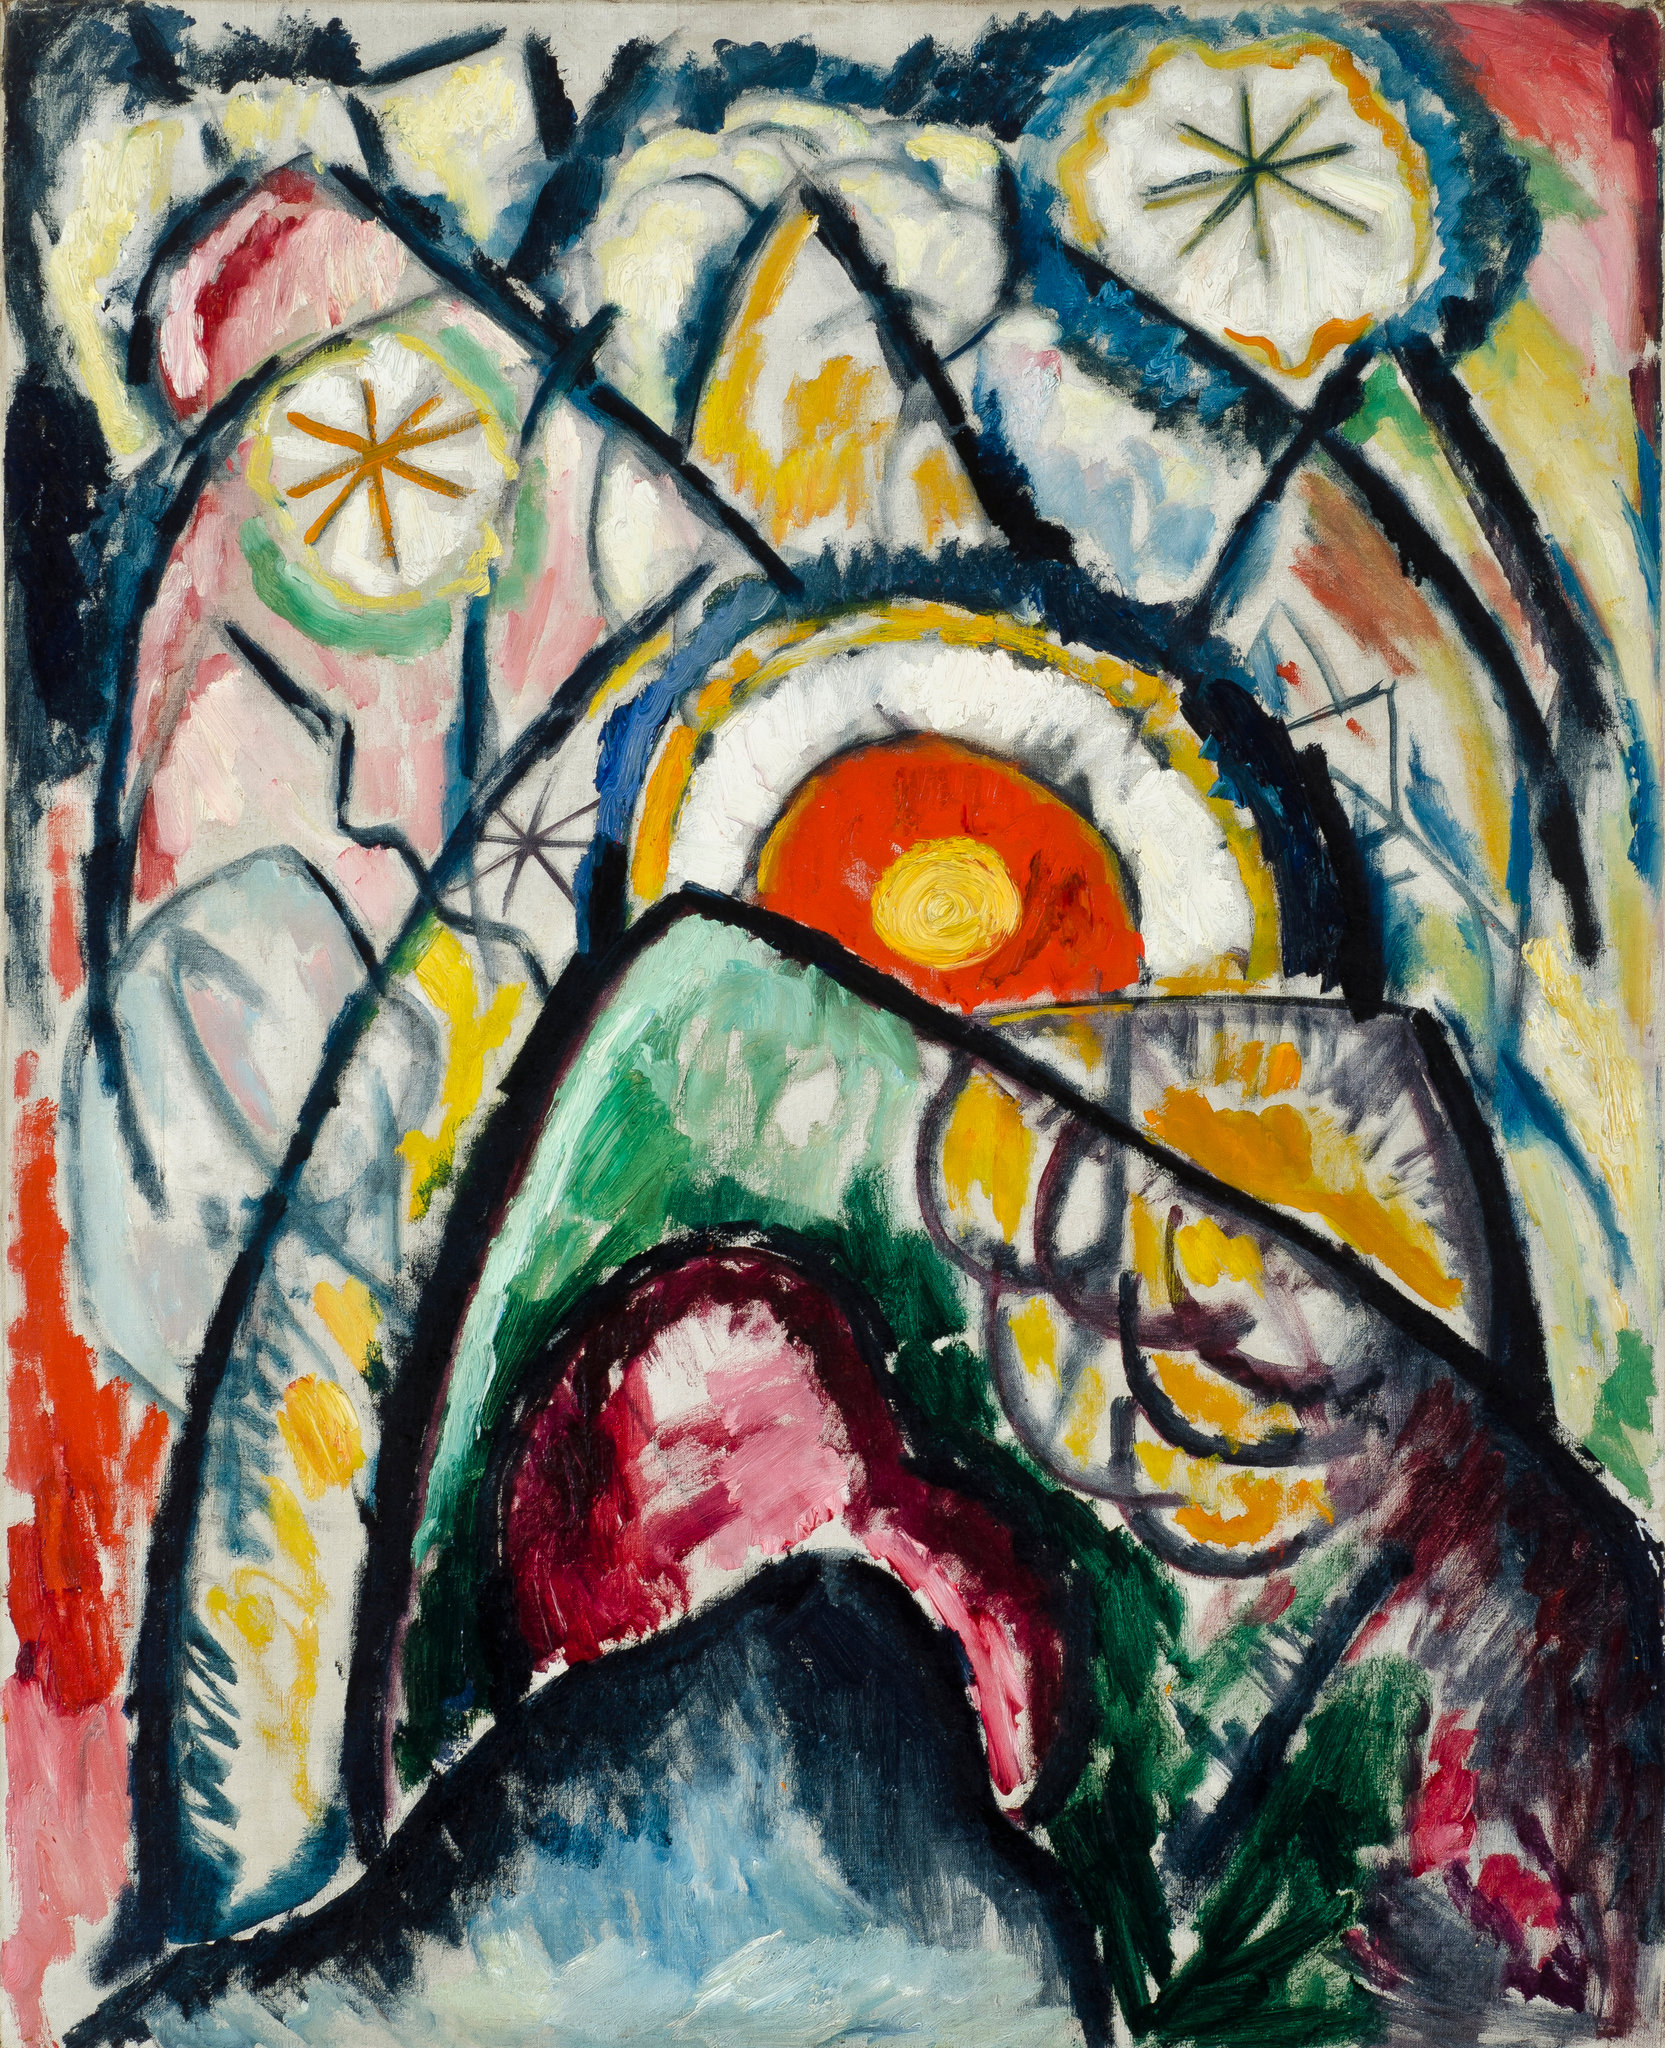 Marsden Hartley, Painting Number One, 1913 (Sheldon Museum of Art/University of